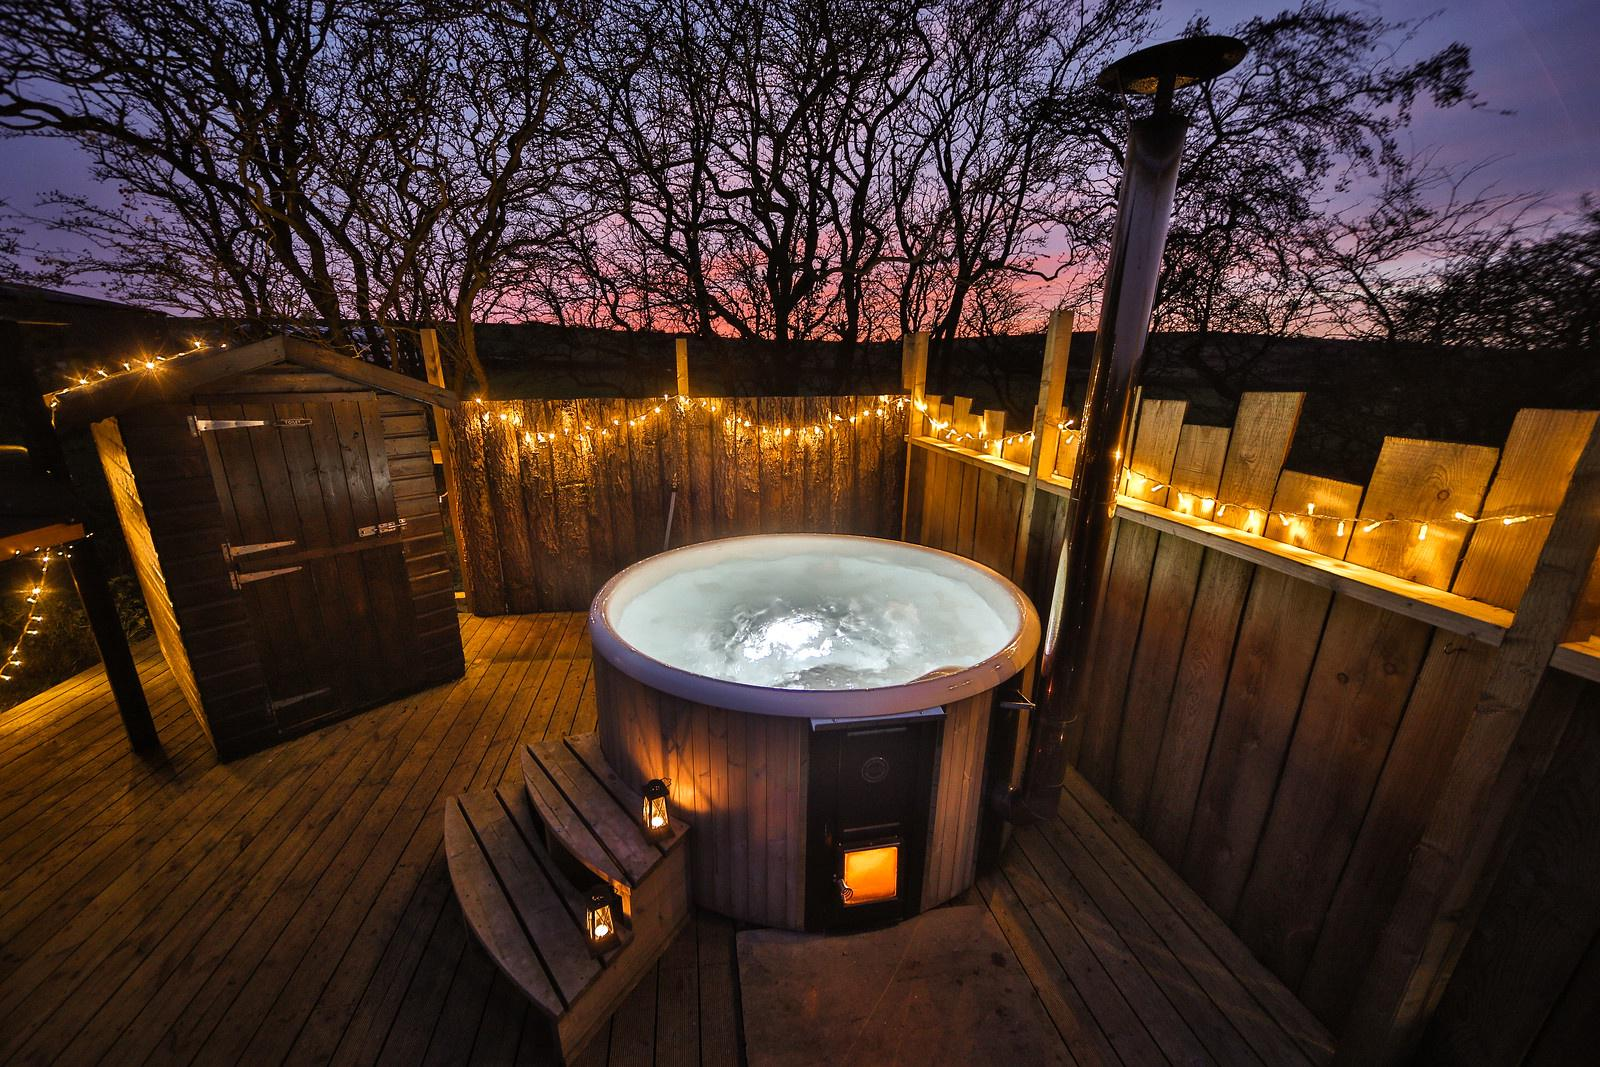 Glamping Sites With Hot Tubs The Best Hot Tub Glamping Sites